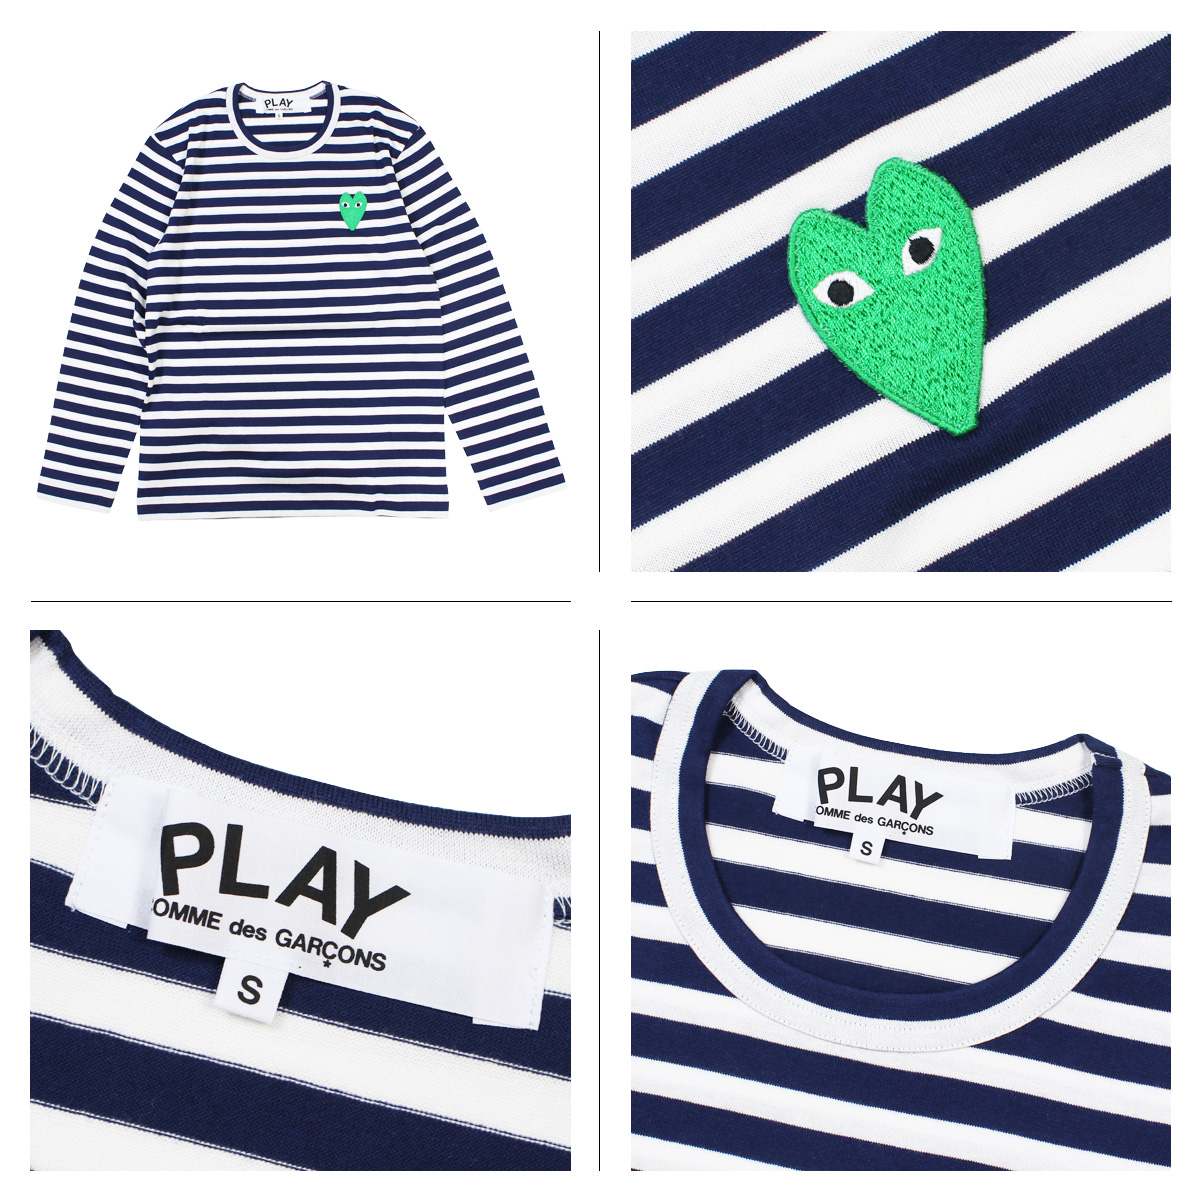 Sugar Online Shop: COMME des GARCONS PLAY T-shirt long sleeves ...